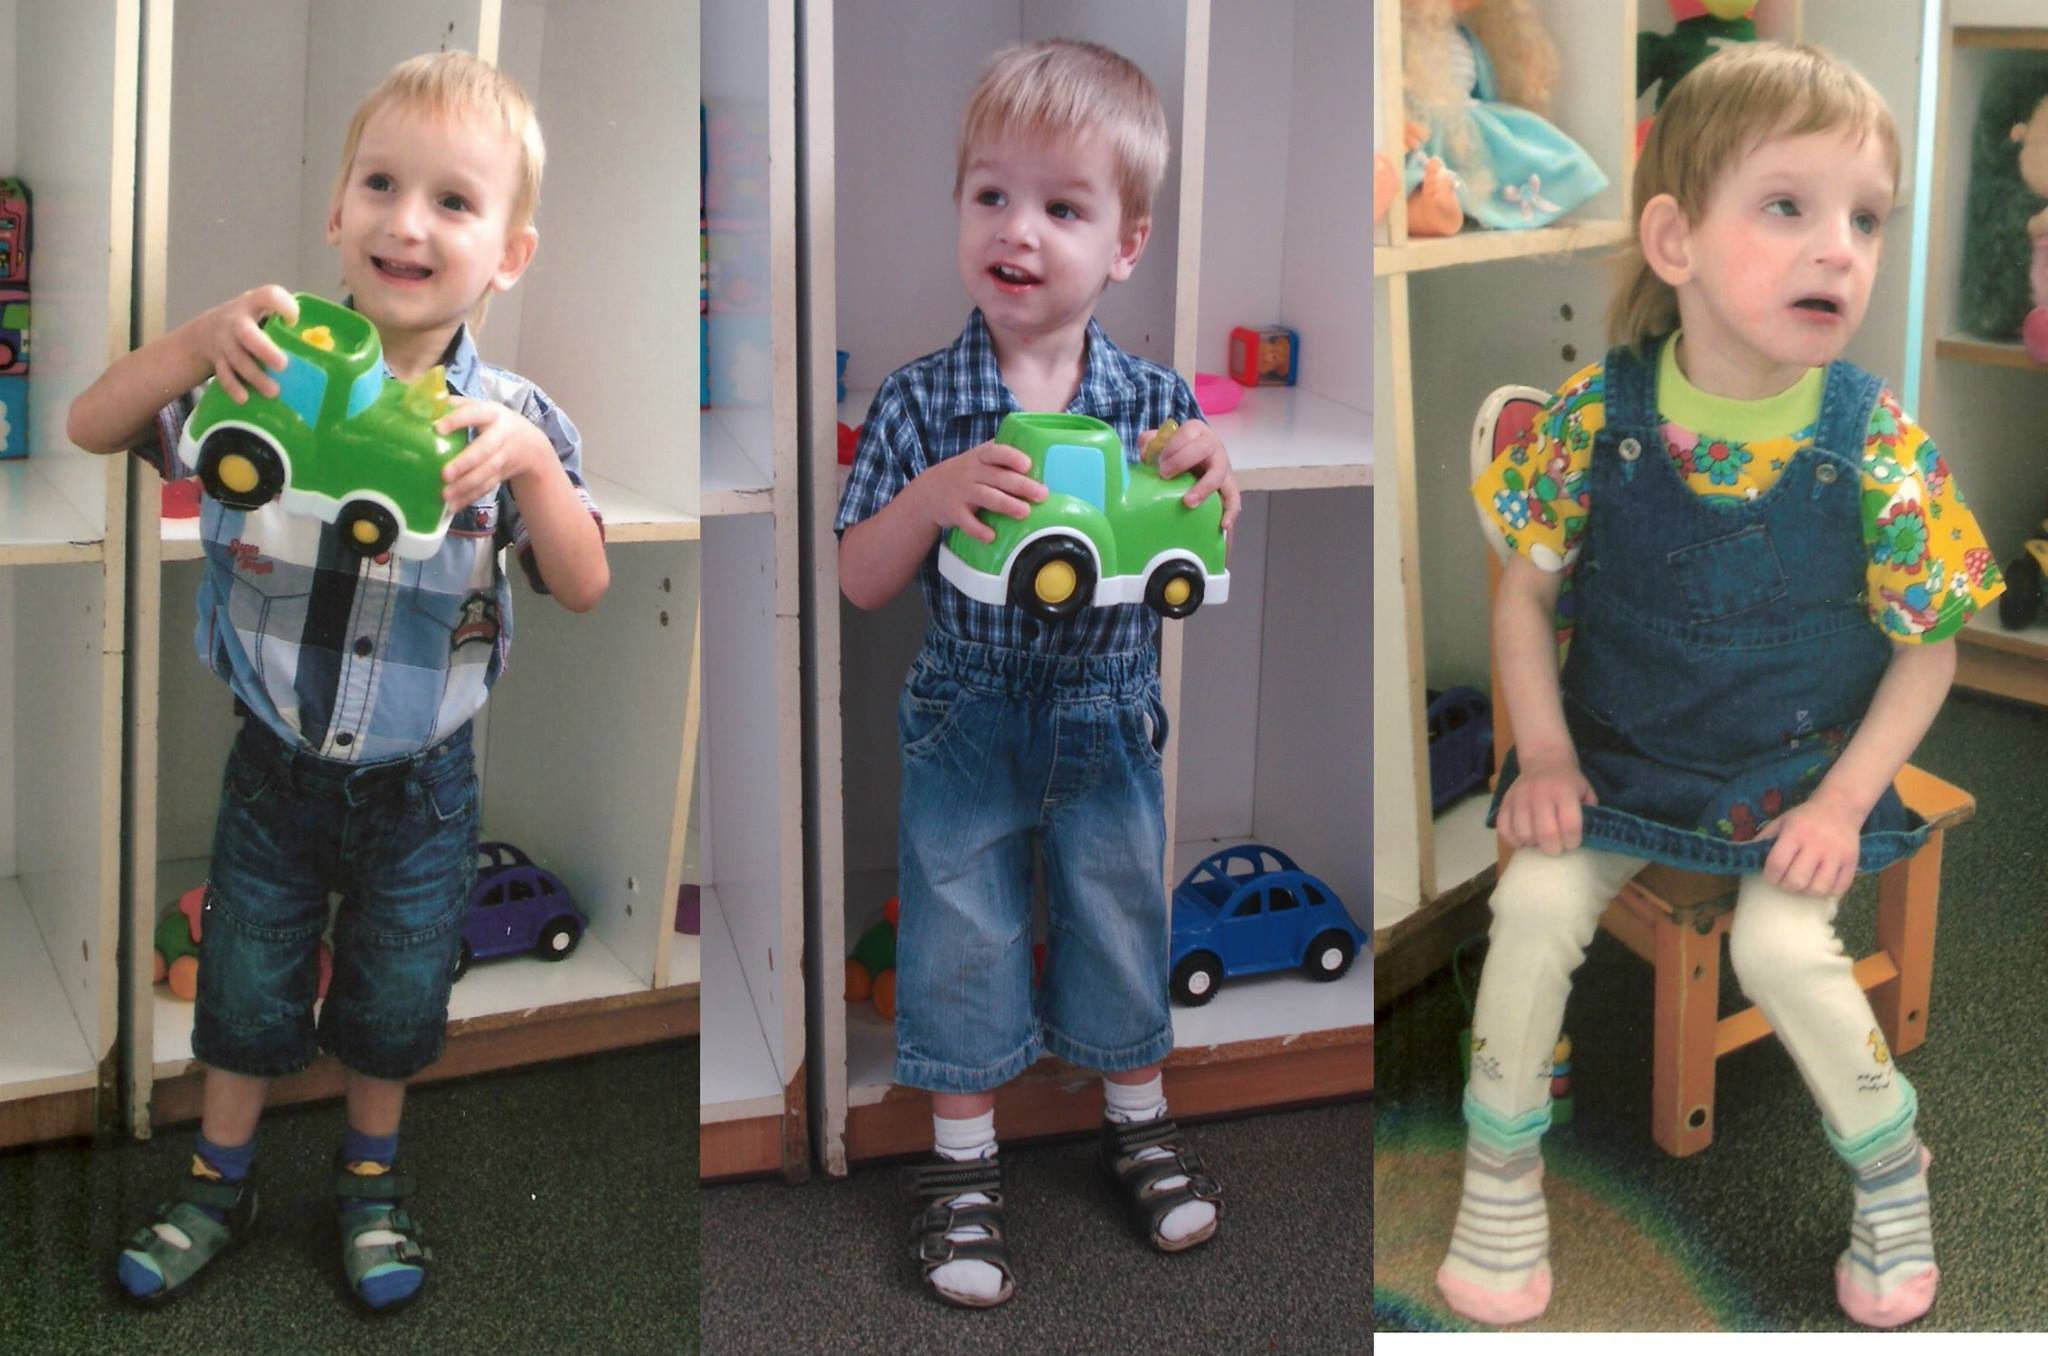 PD: Collage of 3 photos, l to r: Kyson holds up a toy car, wearing a blue plaid shirt & jean shorts; Karl is also holding a toy car, wearing a blue plaid shirt & jean shorts; Suzanne sits in a chair looking off-camera, wearing a jean overall dress, flowered t-shirt, & tights w/ socks. All 3 are beautiful, w/ dark eyes & blonde hair.